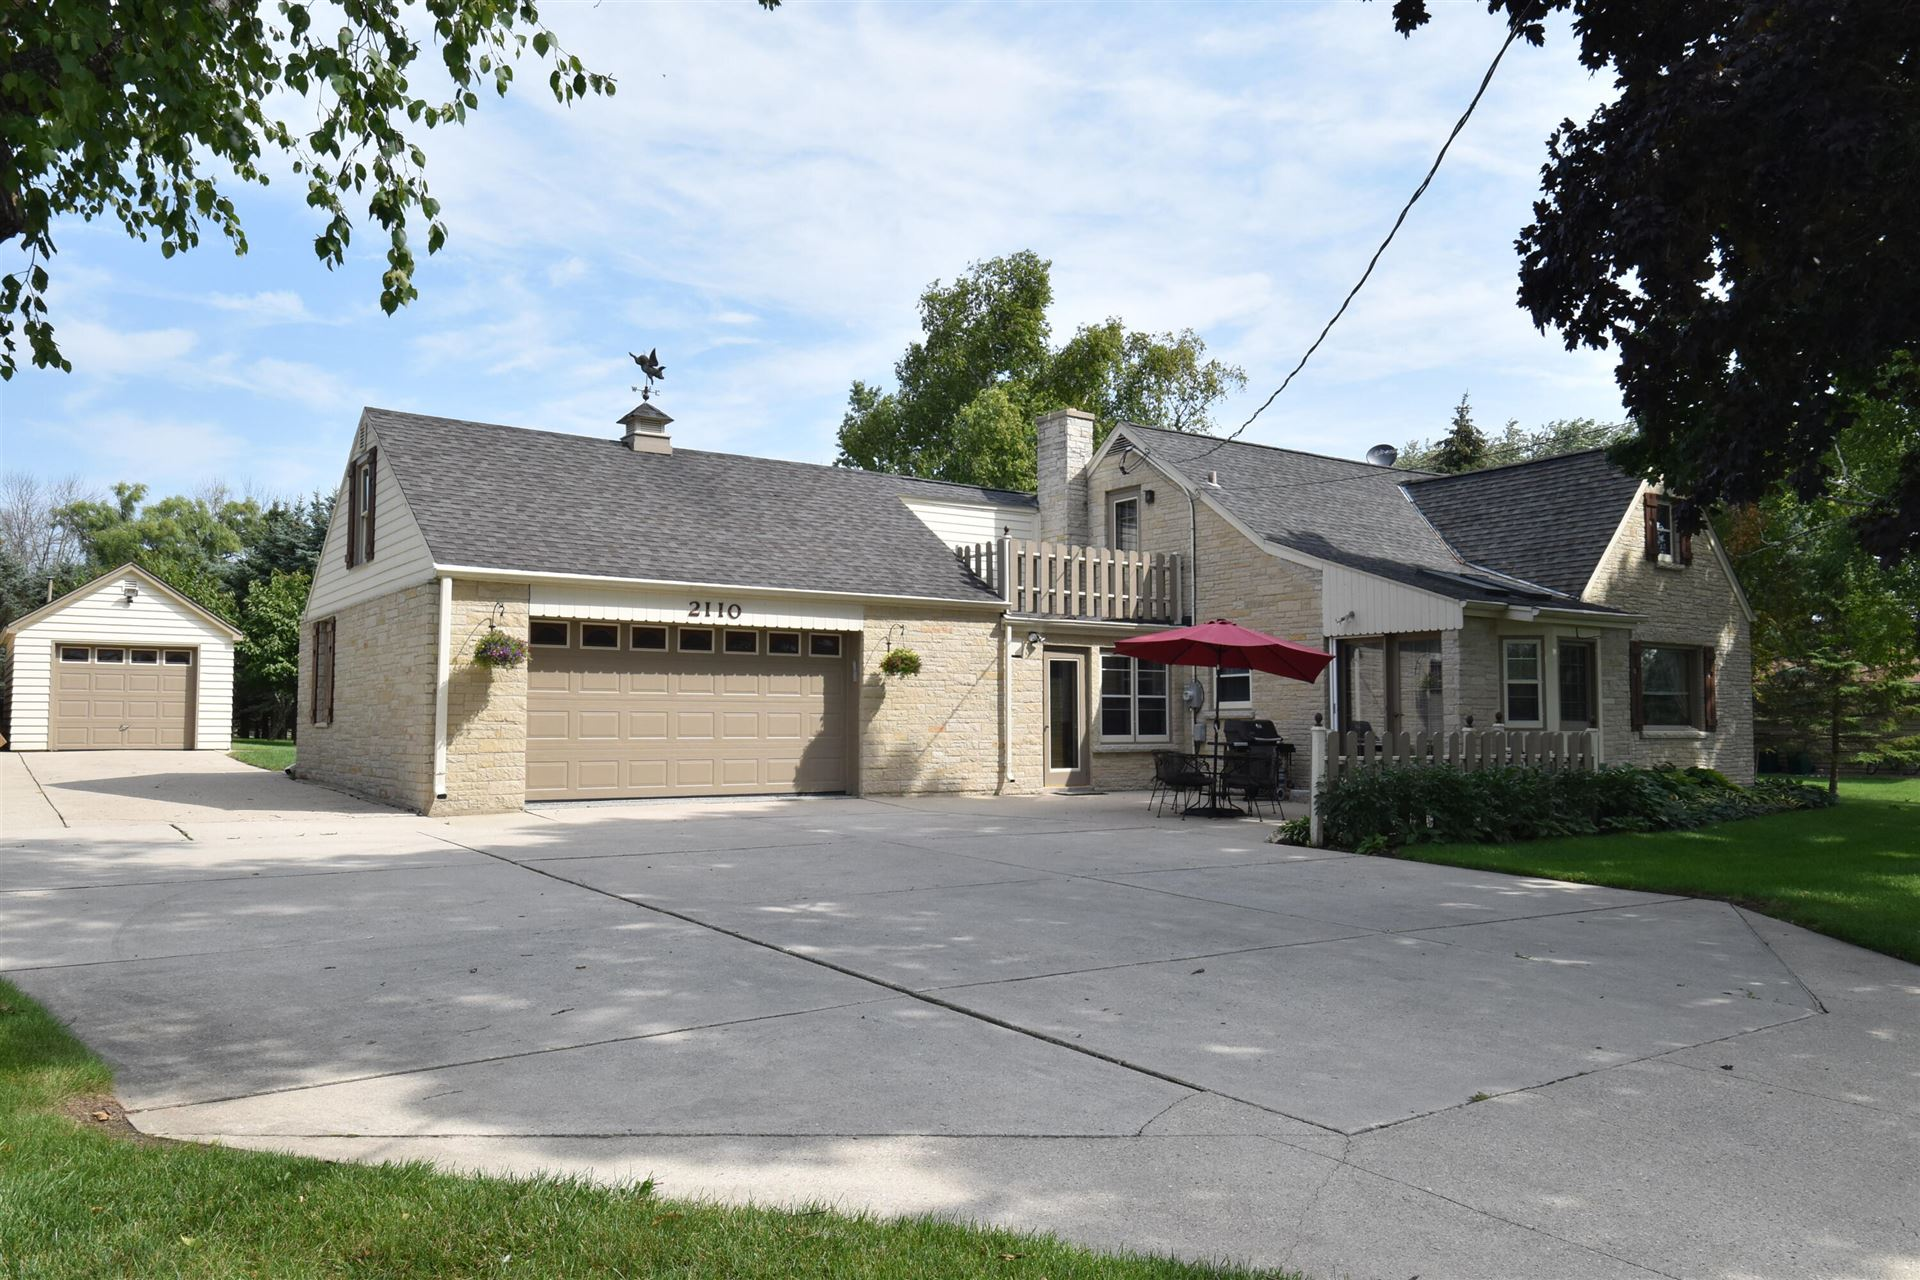 2110 W Highland Rd, Mequon, WI 53092 - #: 1759925